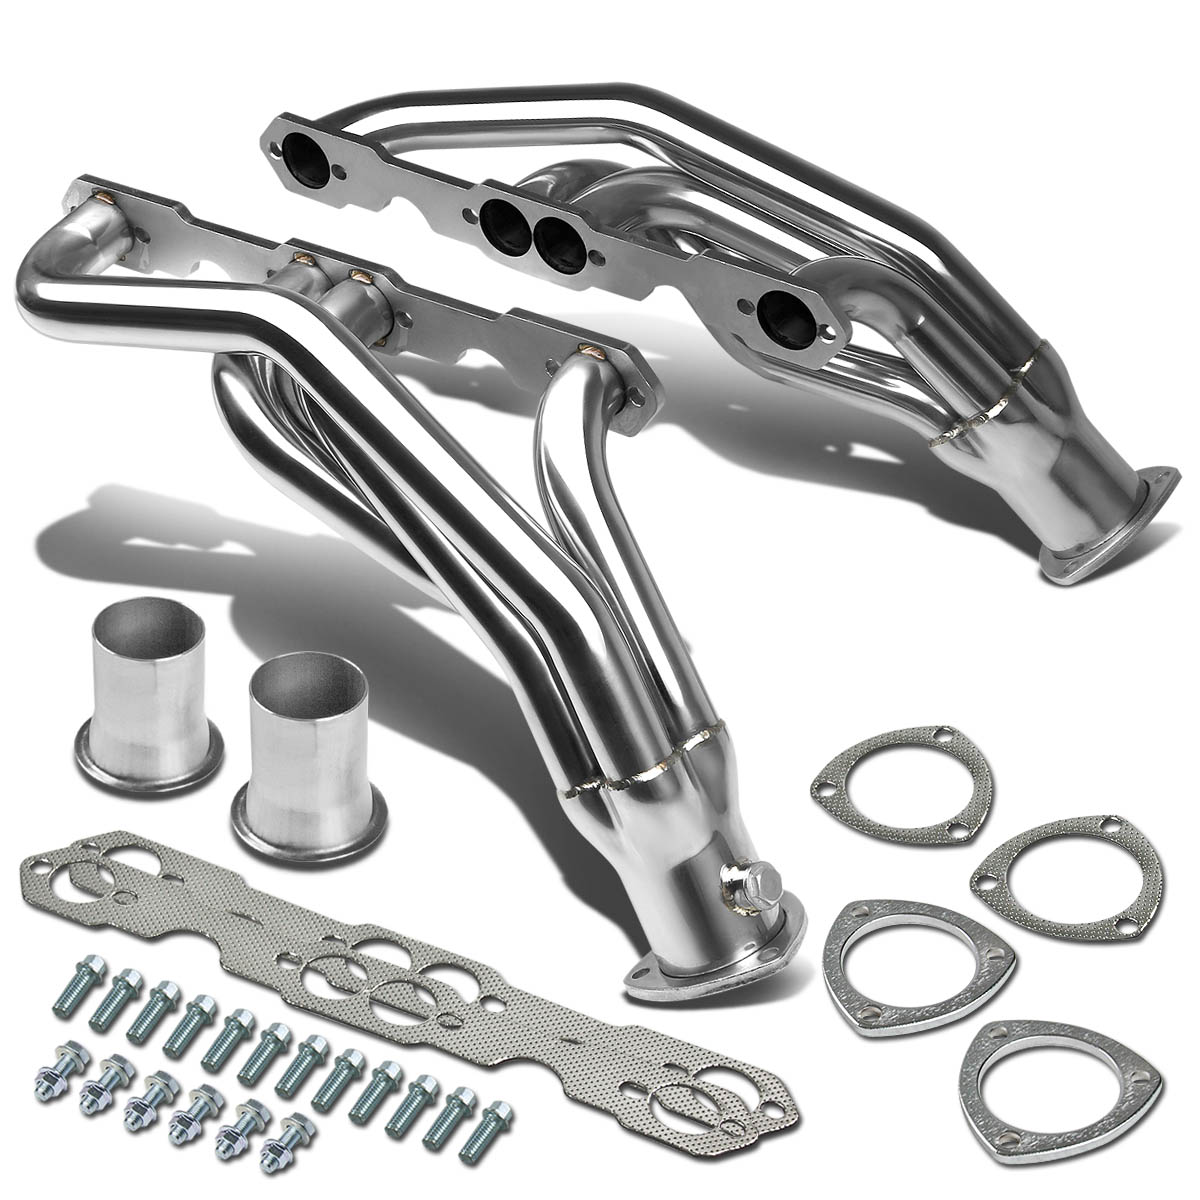 For 88-97 Chevy/GMC C/K Serise High-Performance 2-PC Stainless Steel Exhaust Header Kit 89 90 91 92 93 94 95 96